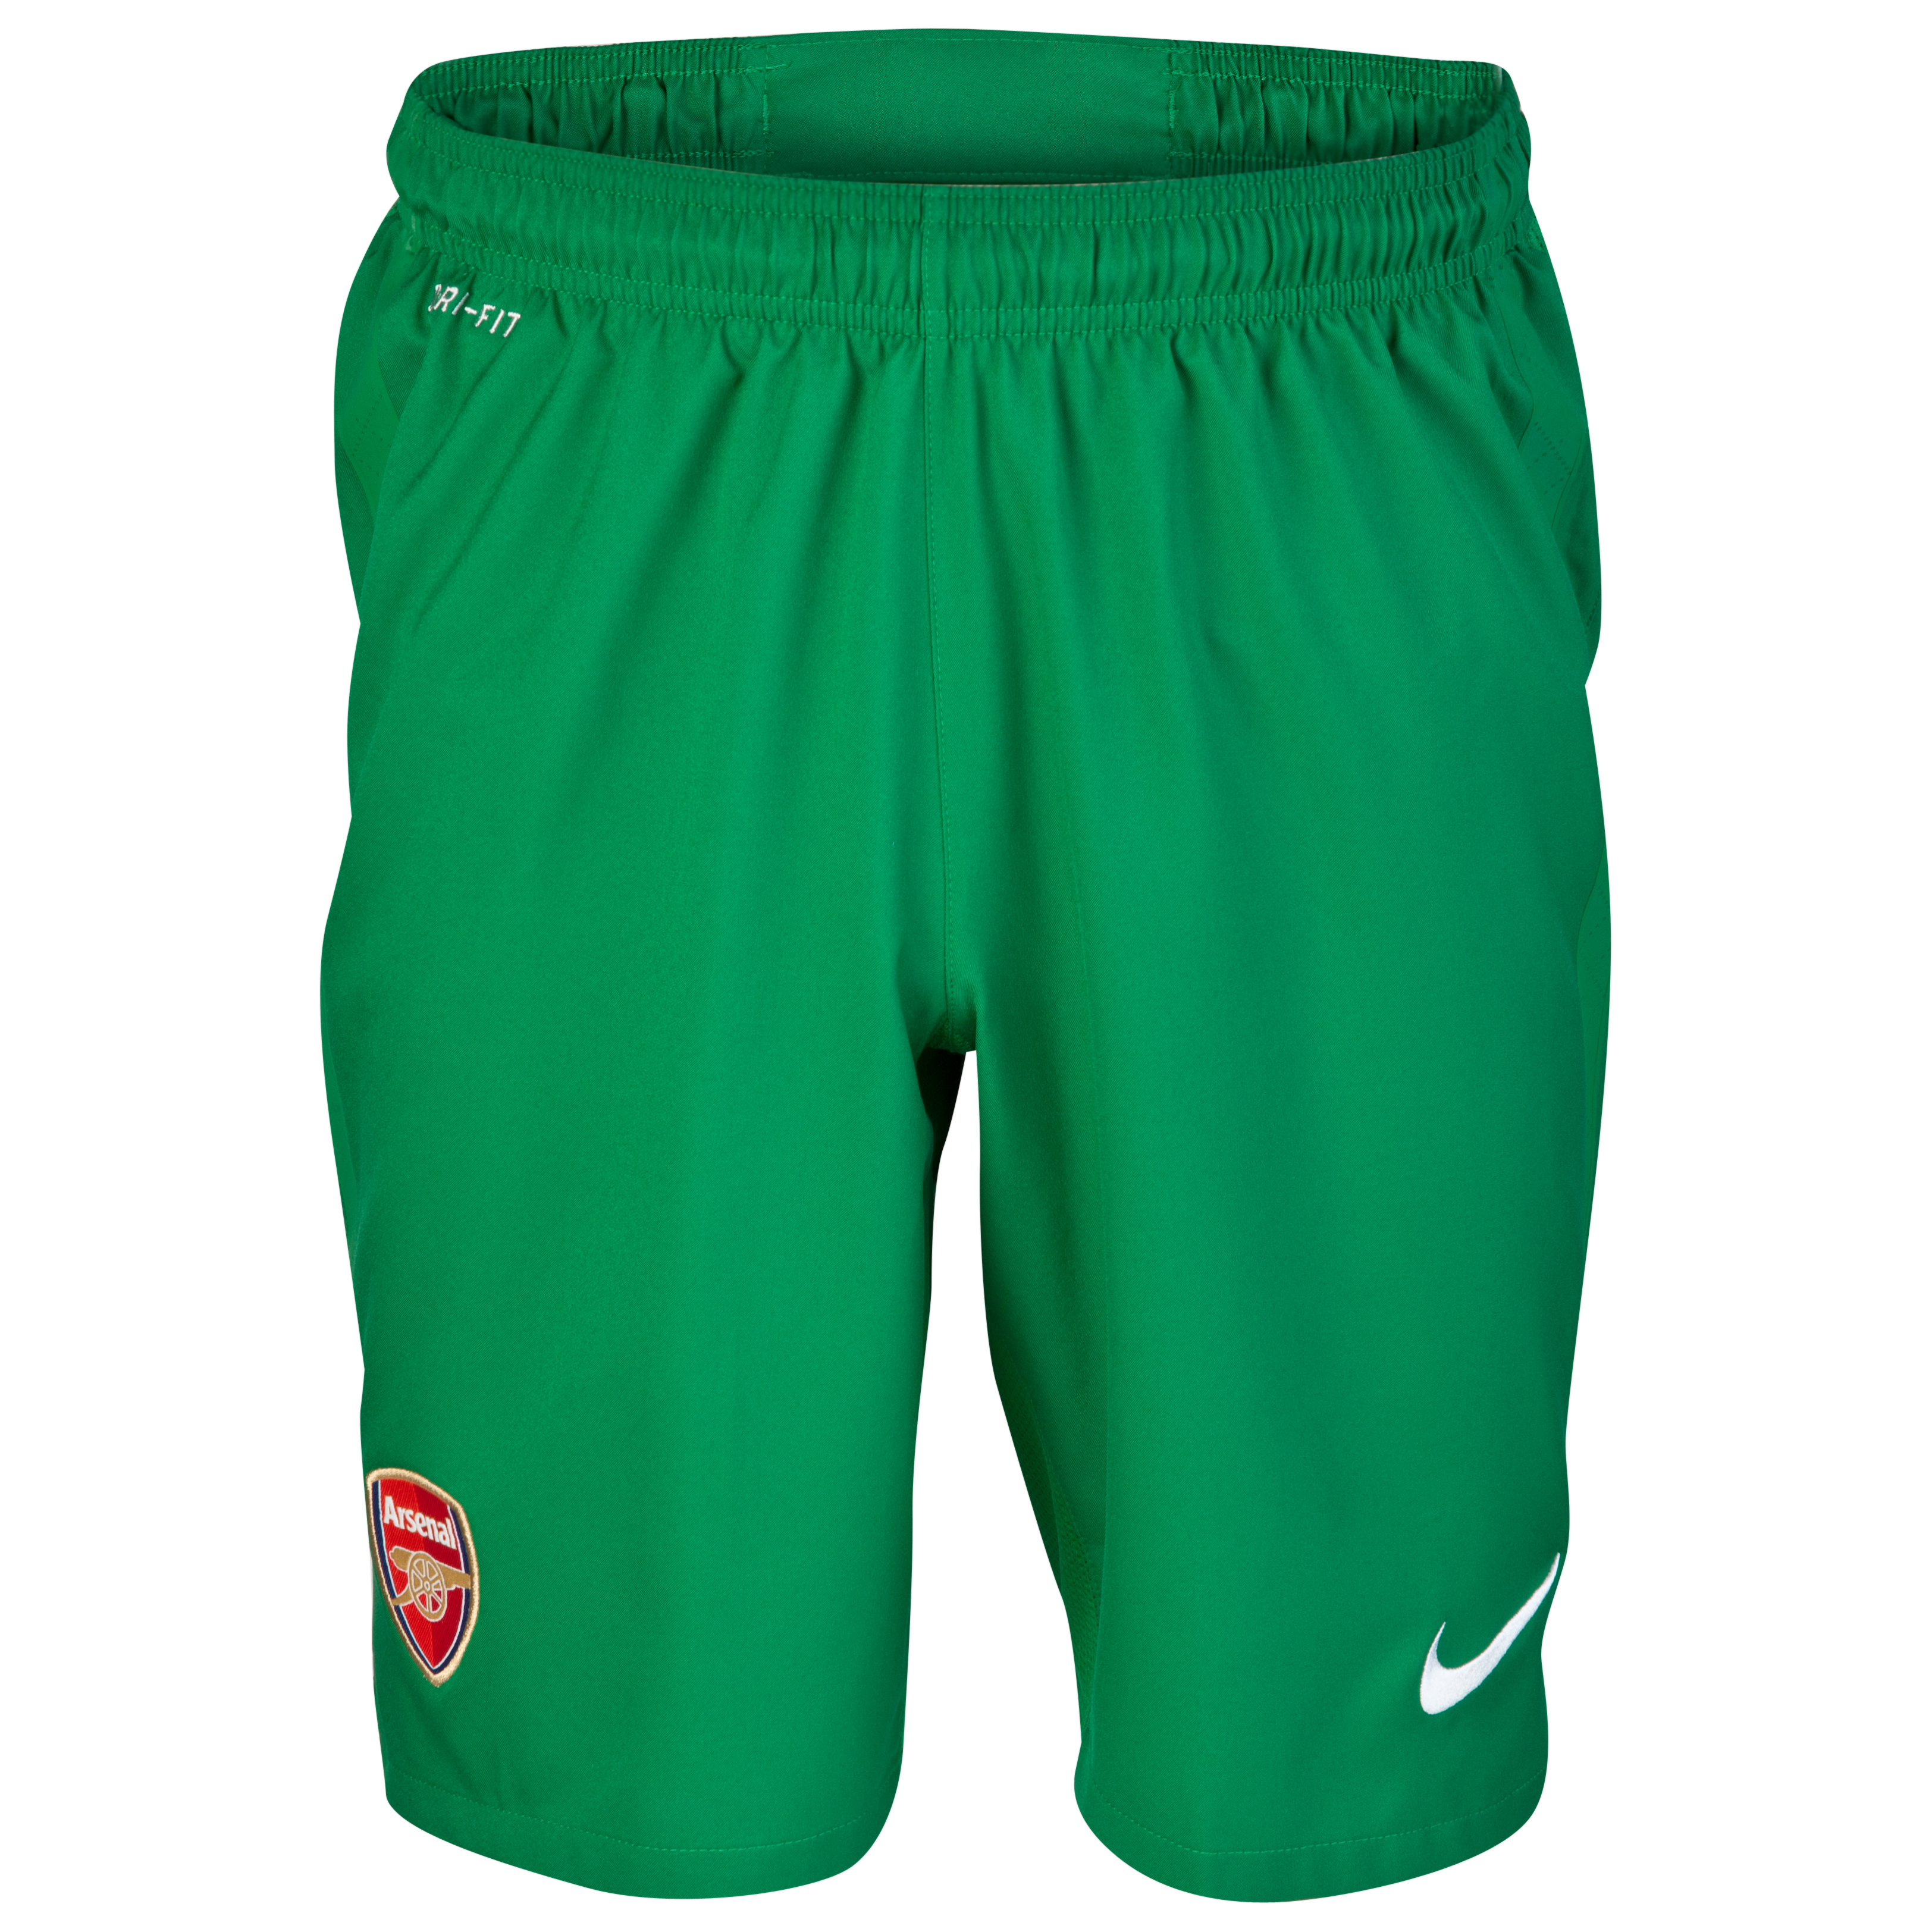 Arsenal Home Goalkeeper Shorts 2012/13